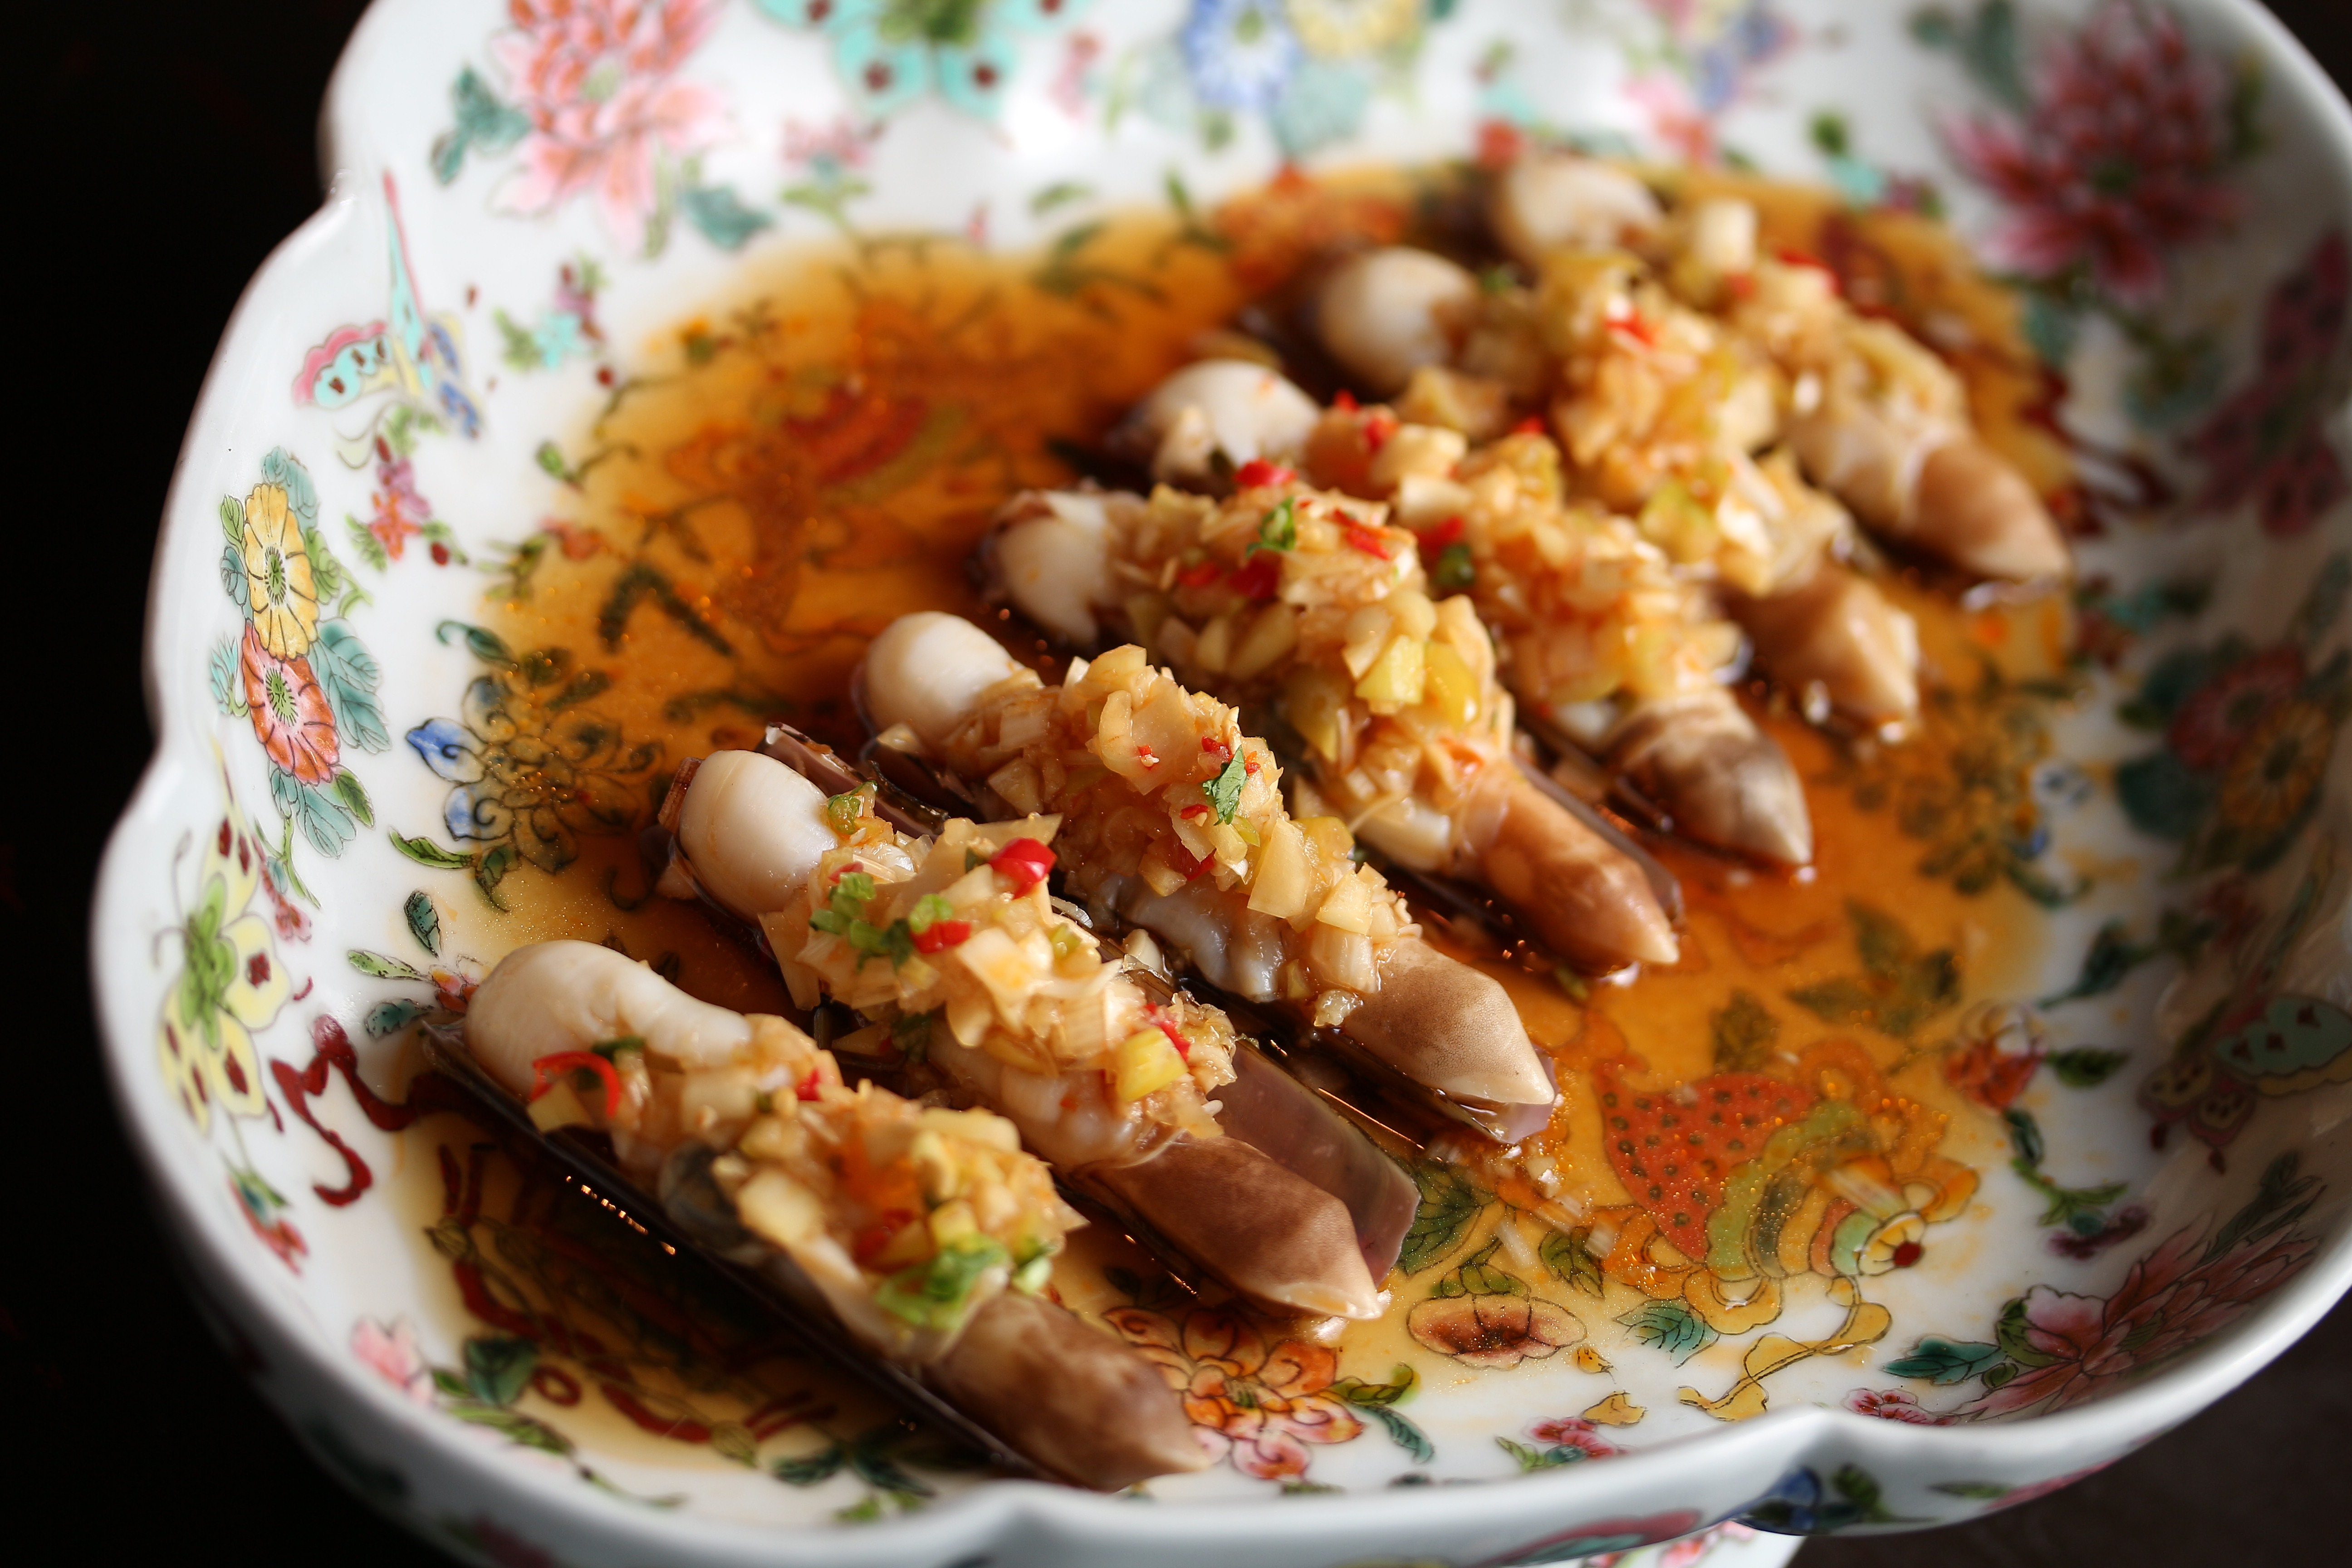 Chilled spiced razor clams steeped in Chinese rose wine